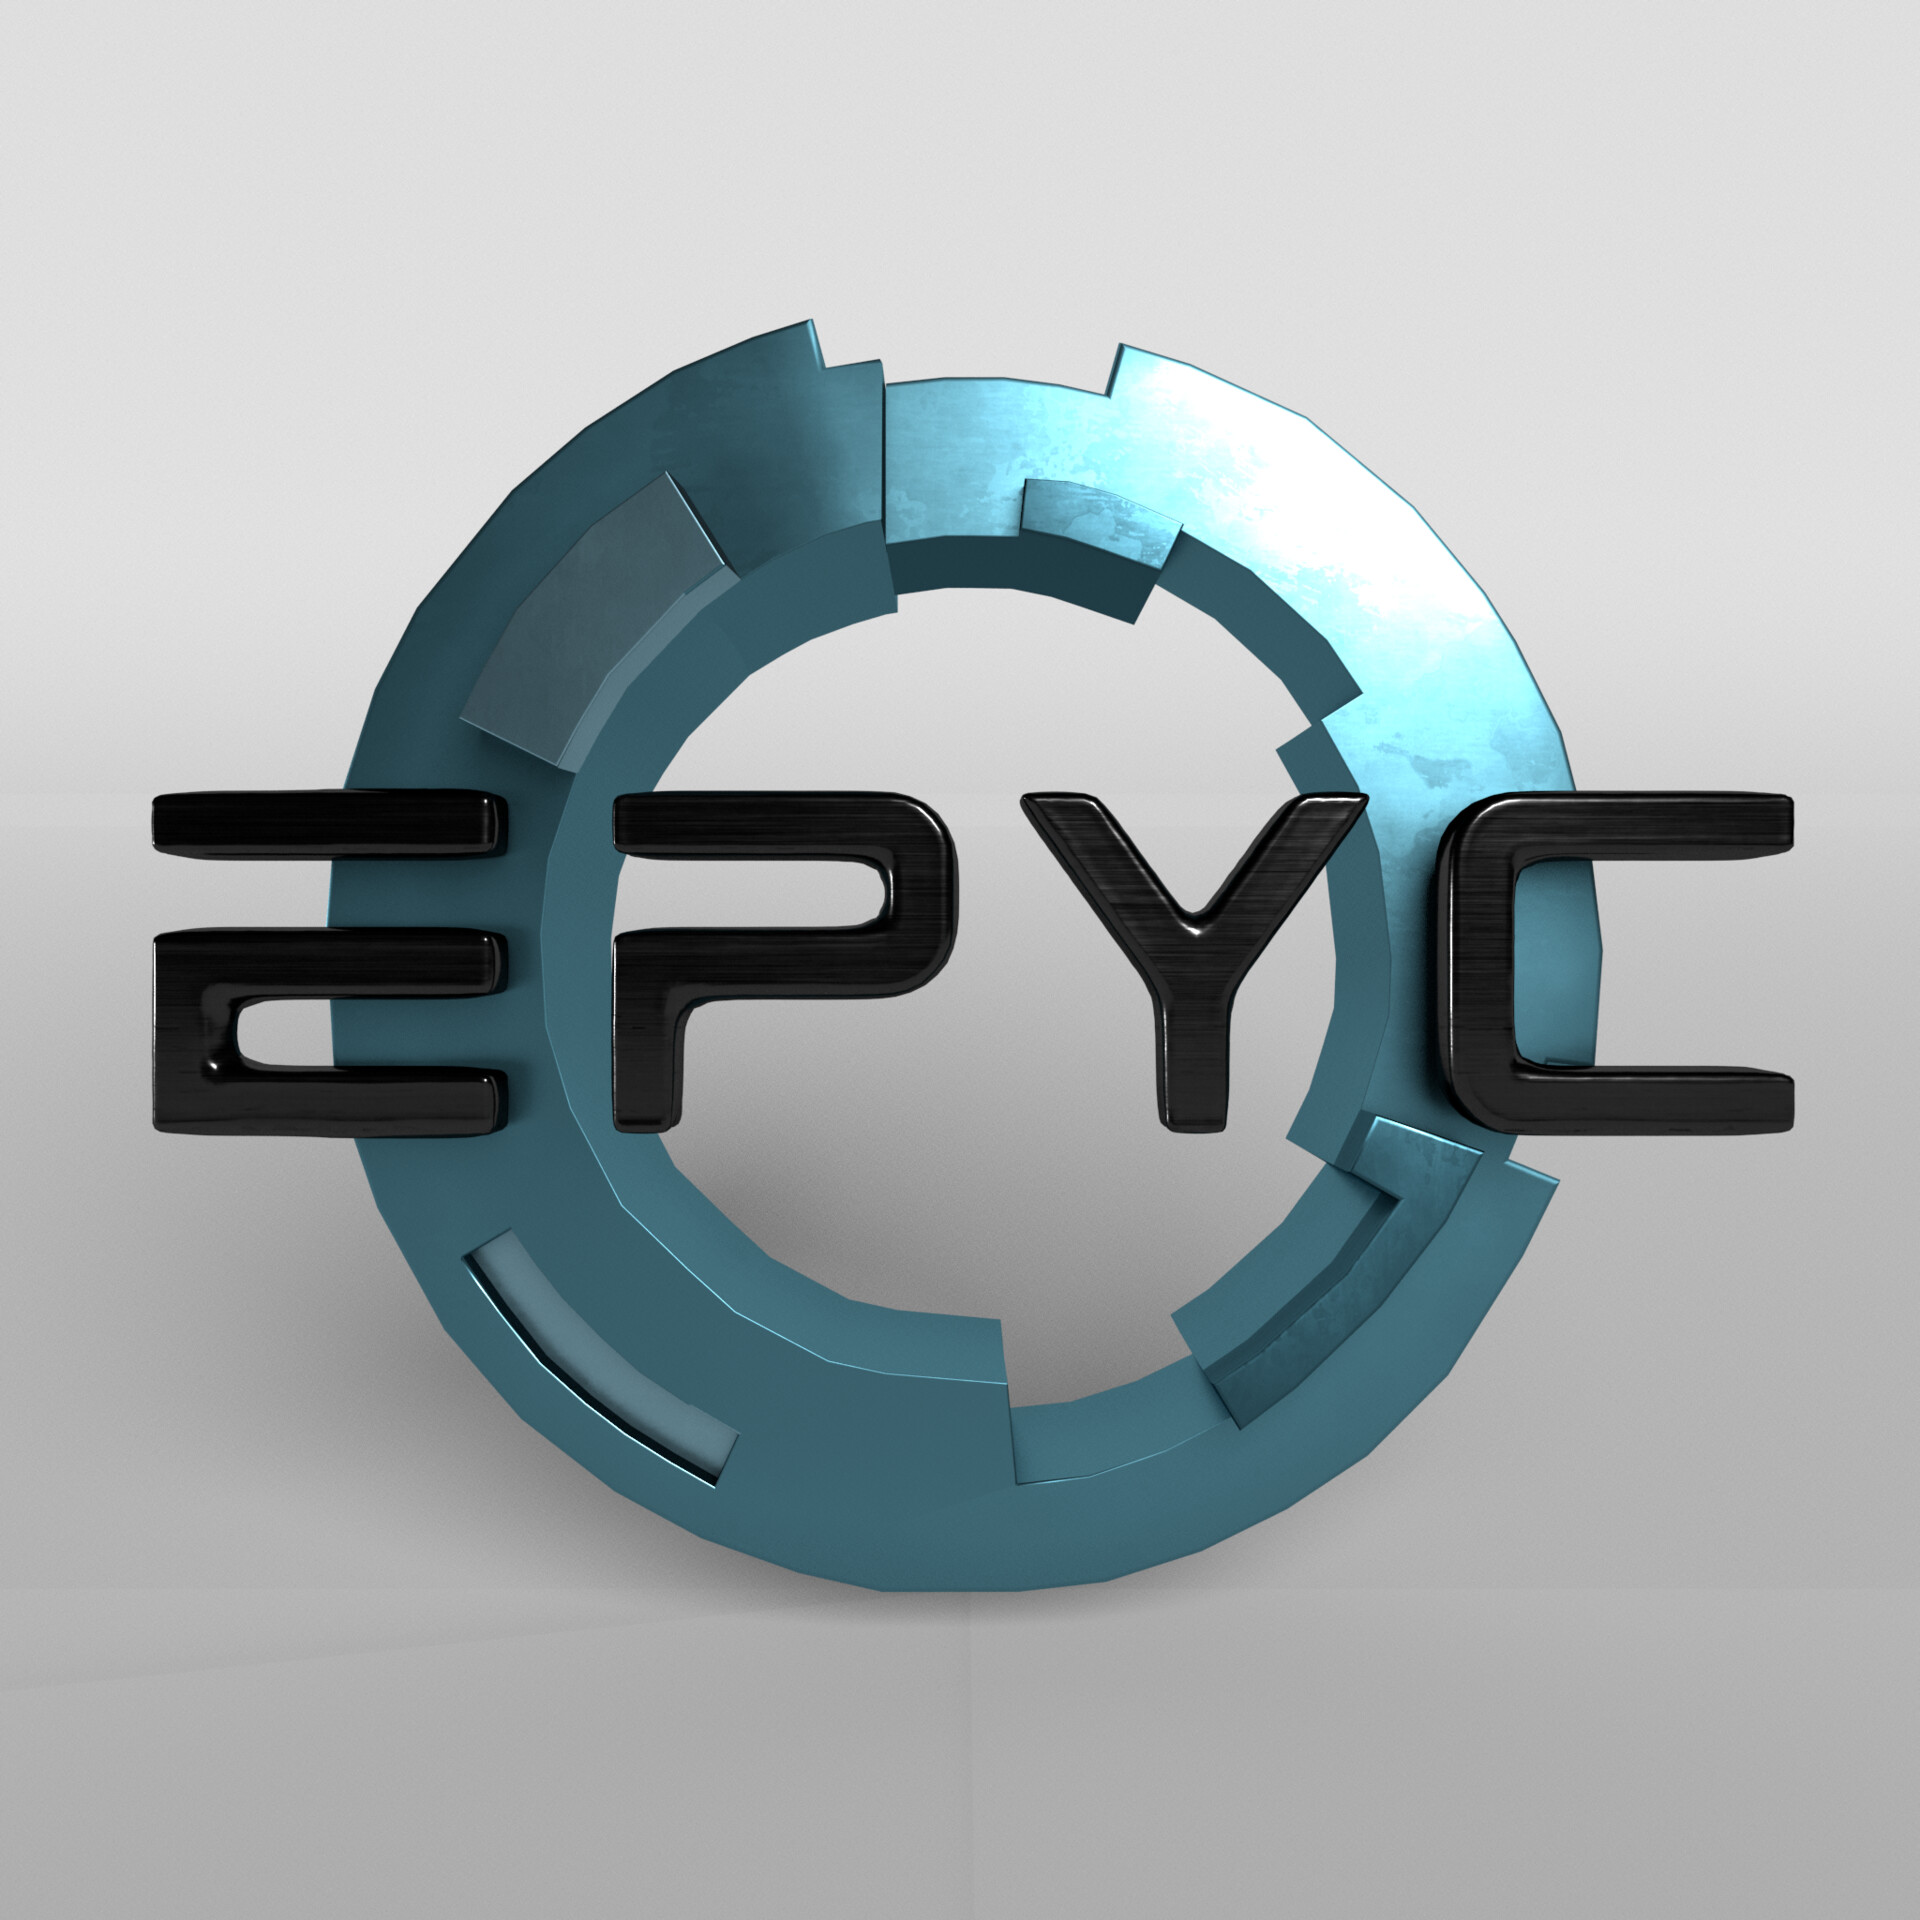 Artstation Amd Epyc Logo 01 Bp Tom